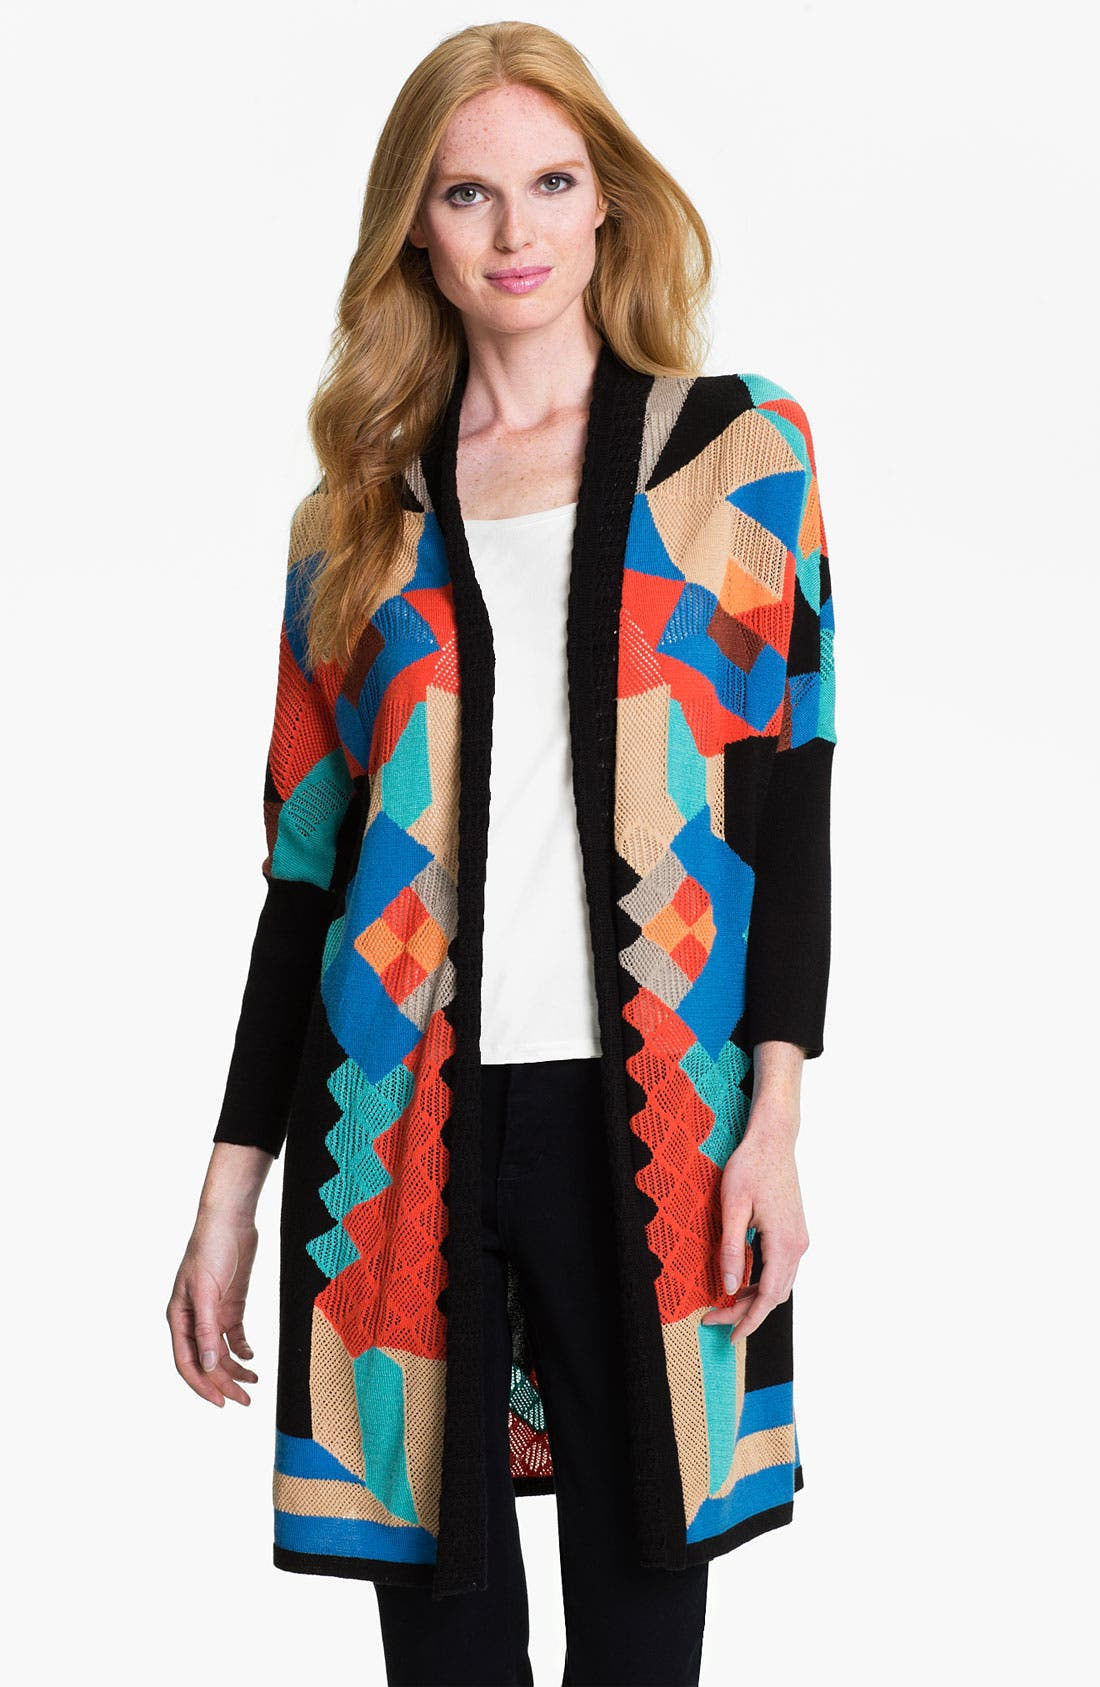 Alternate Image 1 Selected - Nic + Zoe 'Wonderland' Cardigan (Petite)